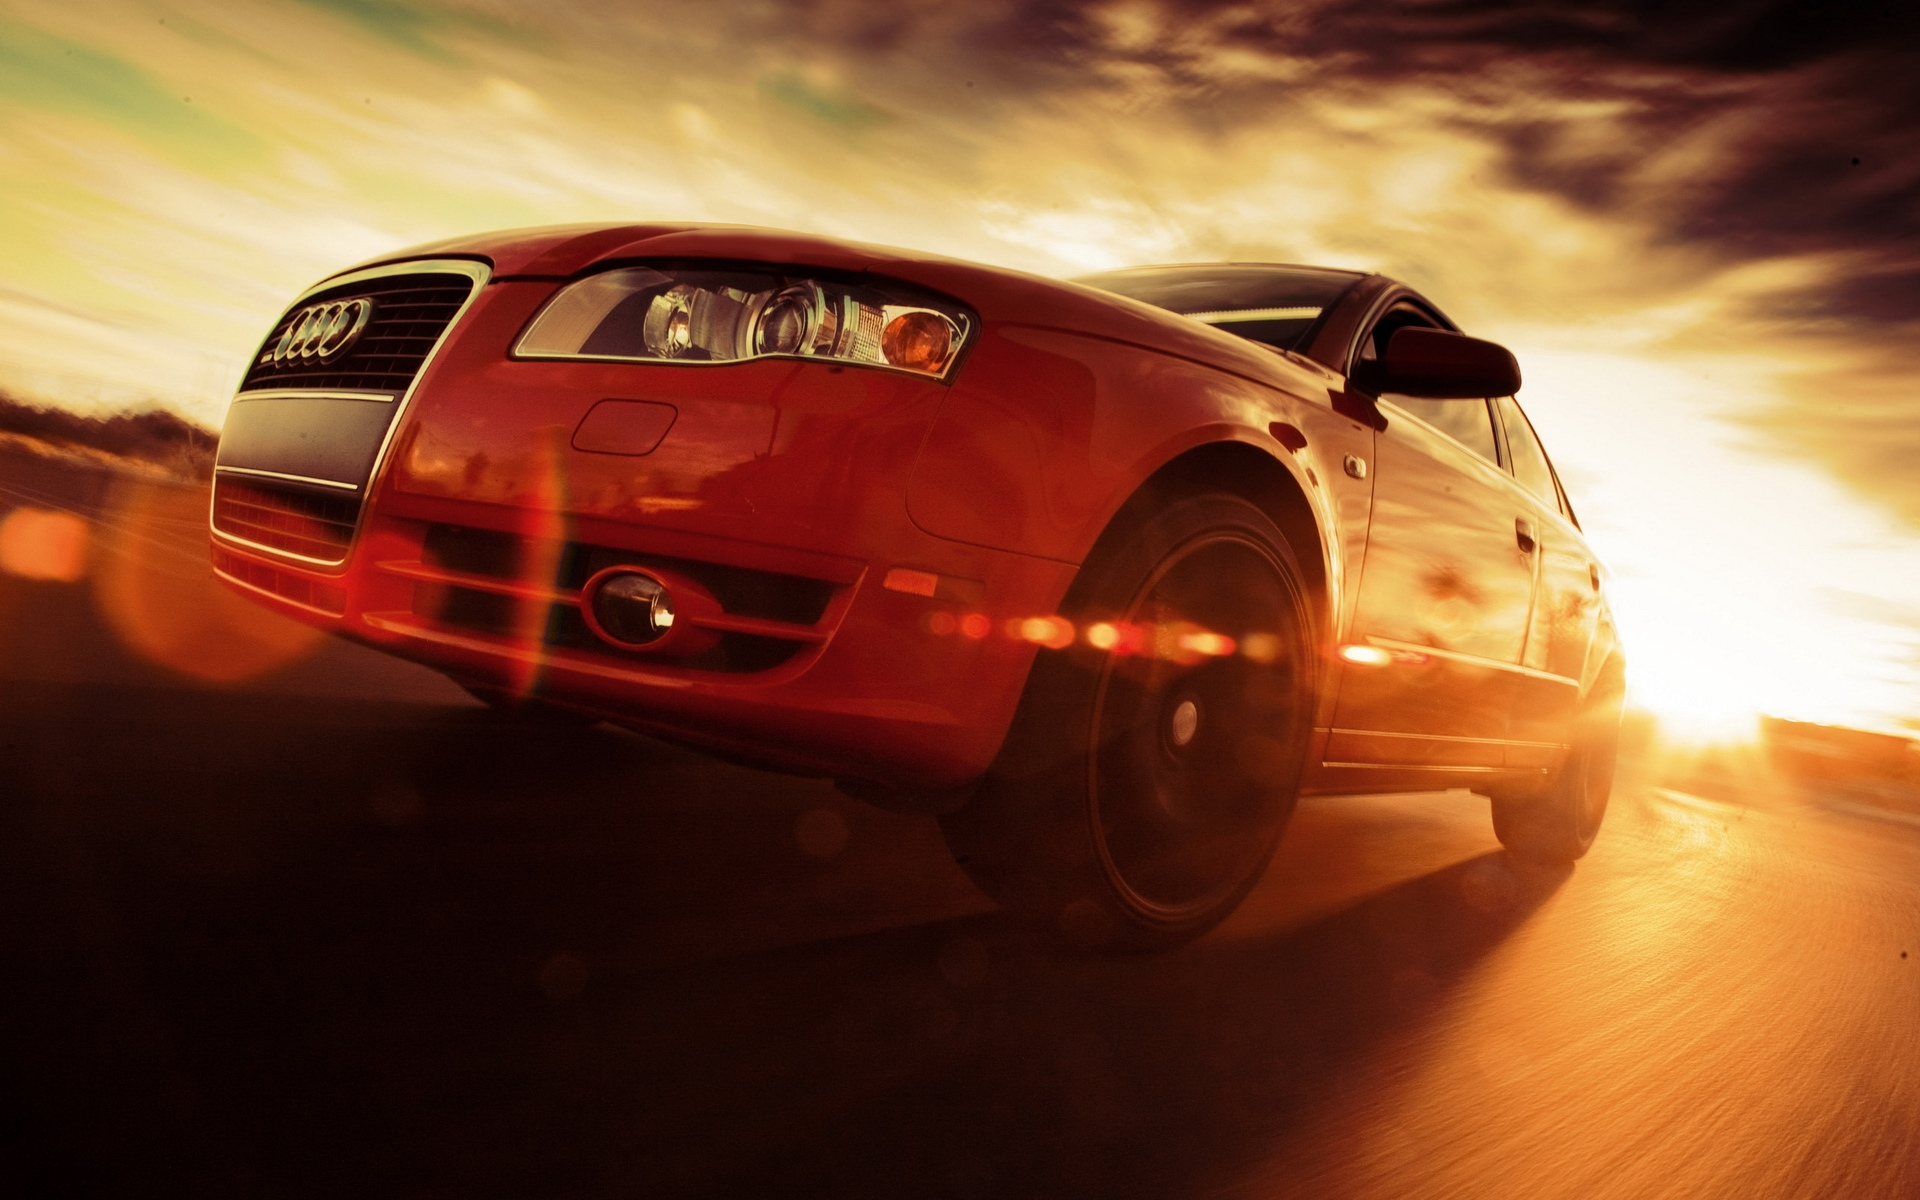 Red Audi Rs4 Close Up Speed HD Desktop wallpaper, images and photos